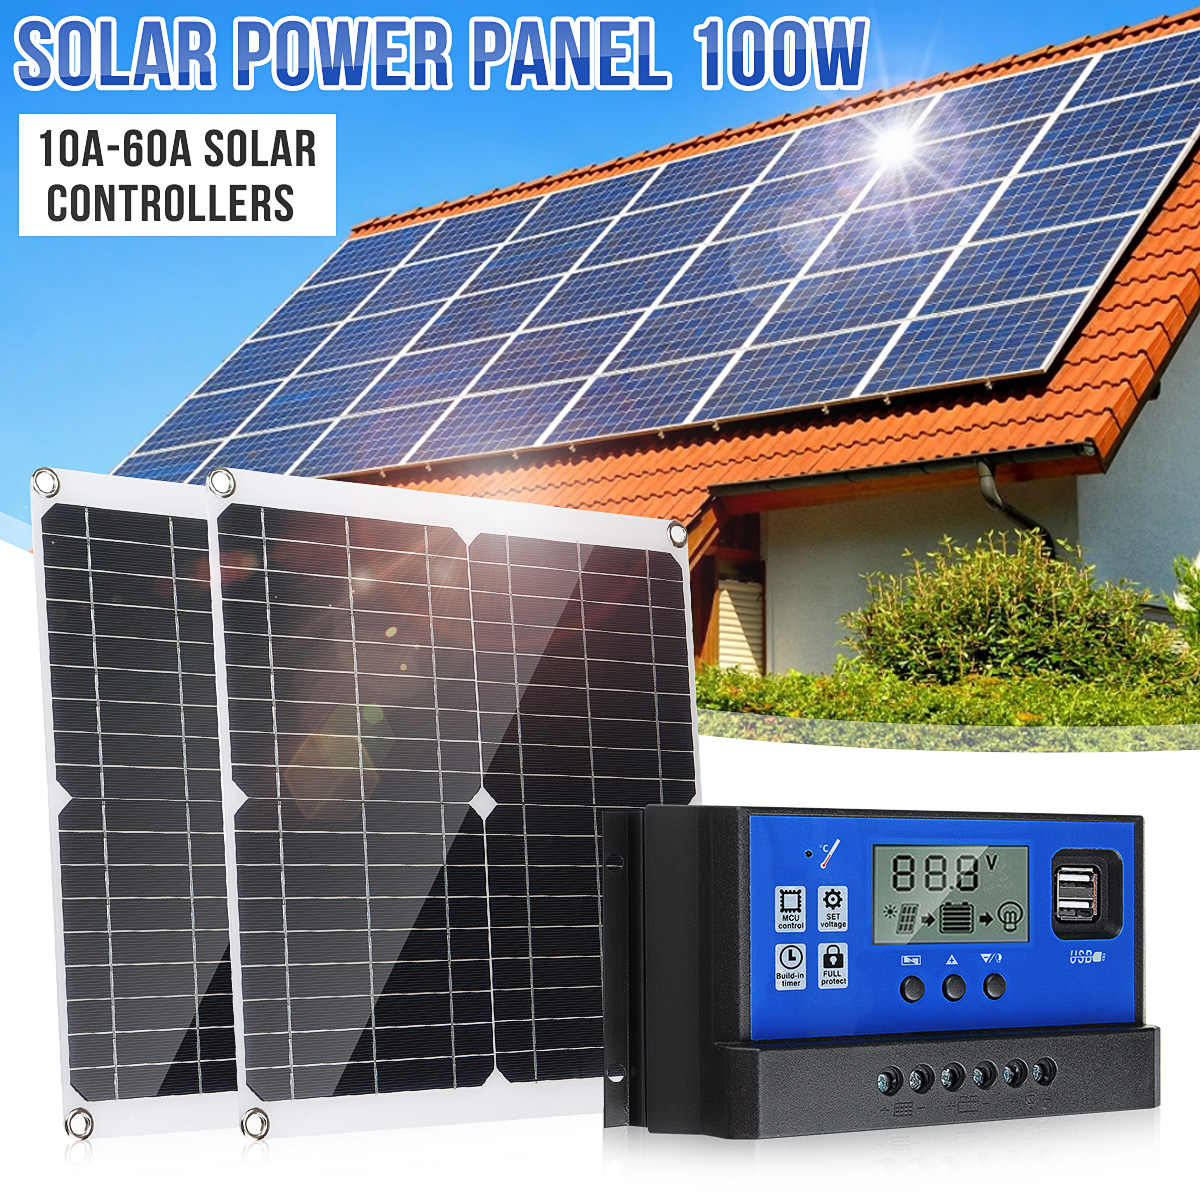 <font><b>12V</b></font> <font><b>100W</b></font> <font><b>Solar</b></font> <font><b>Panel</b></font> Battery Charger for Street Light Outdoor Light Surveillance Camera Car RV Boat 10A 20A 30A 60A Control image